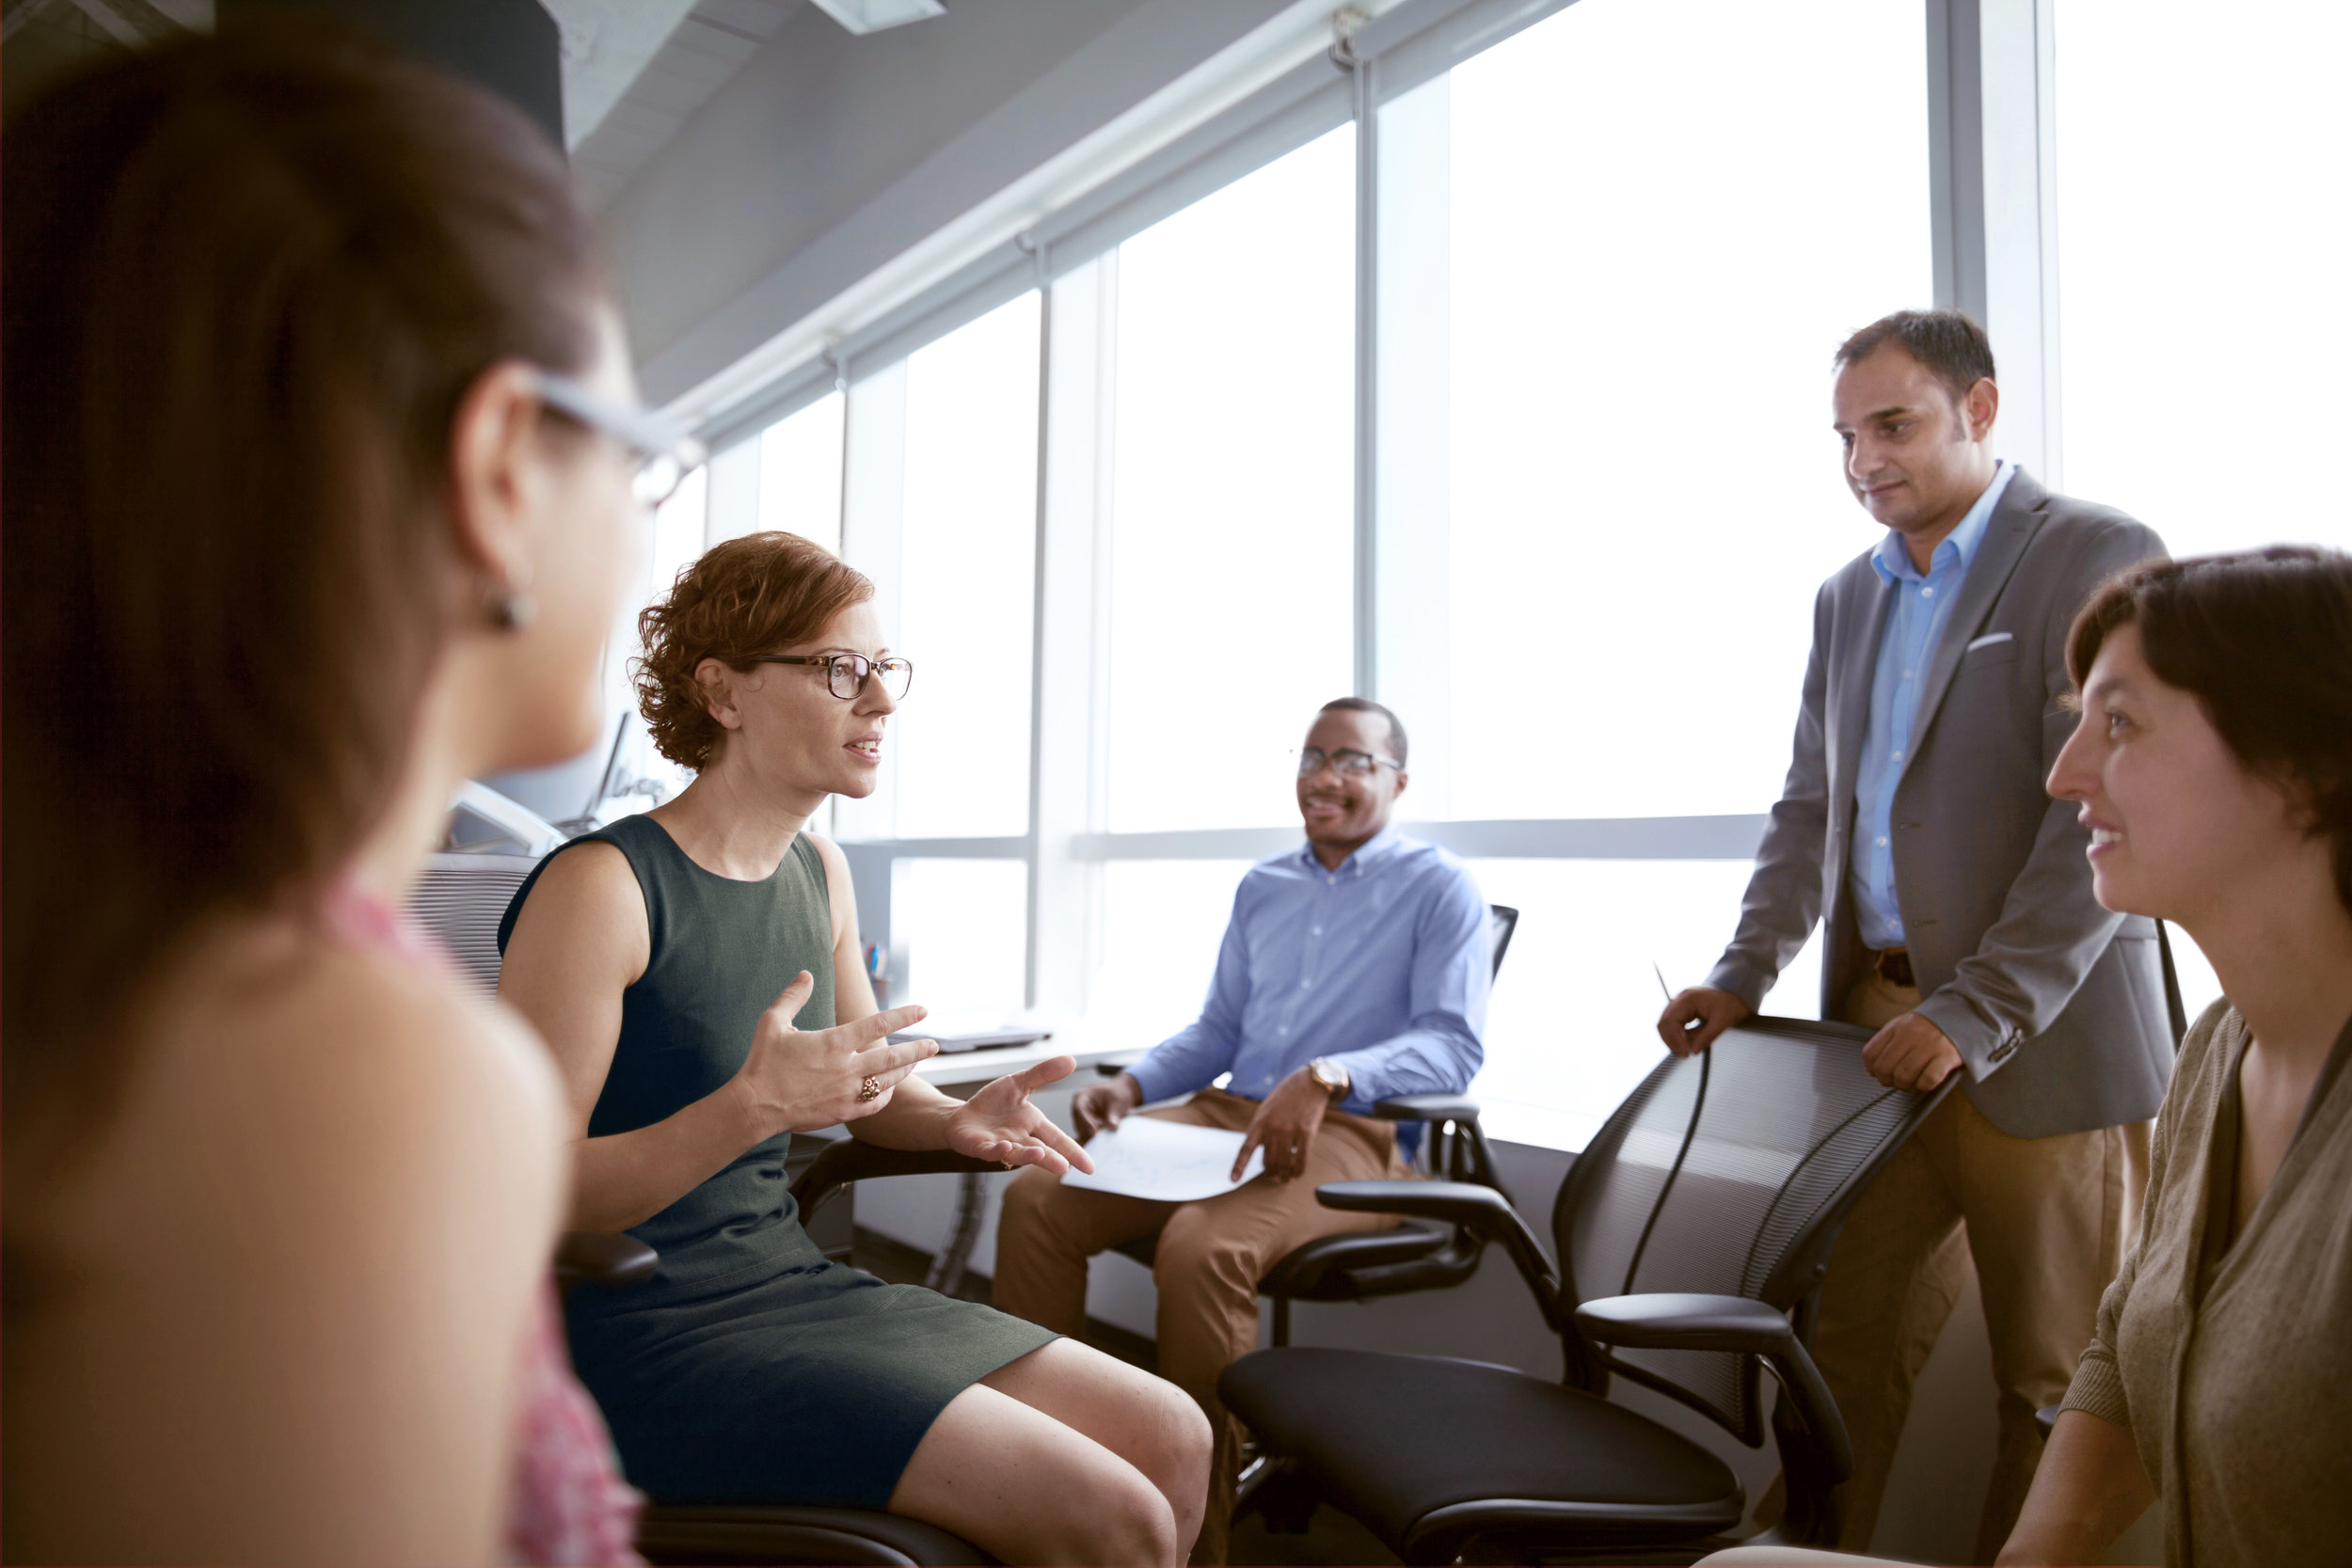 Mature-woman-talking-with-business-colleagues-in-office-637903914_5616x3744 (1).jpeg